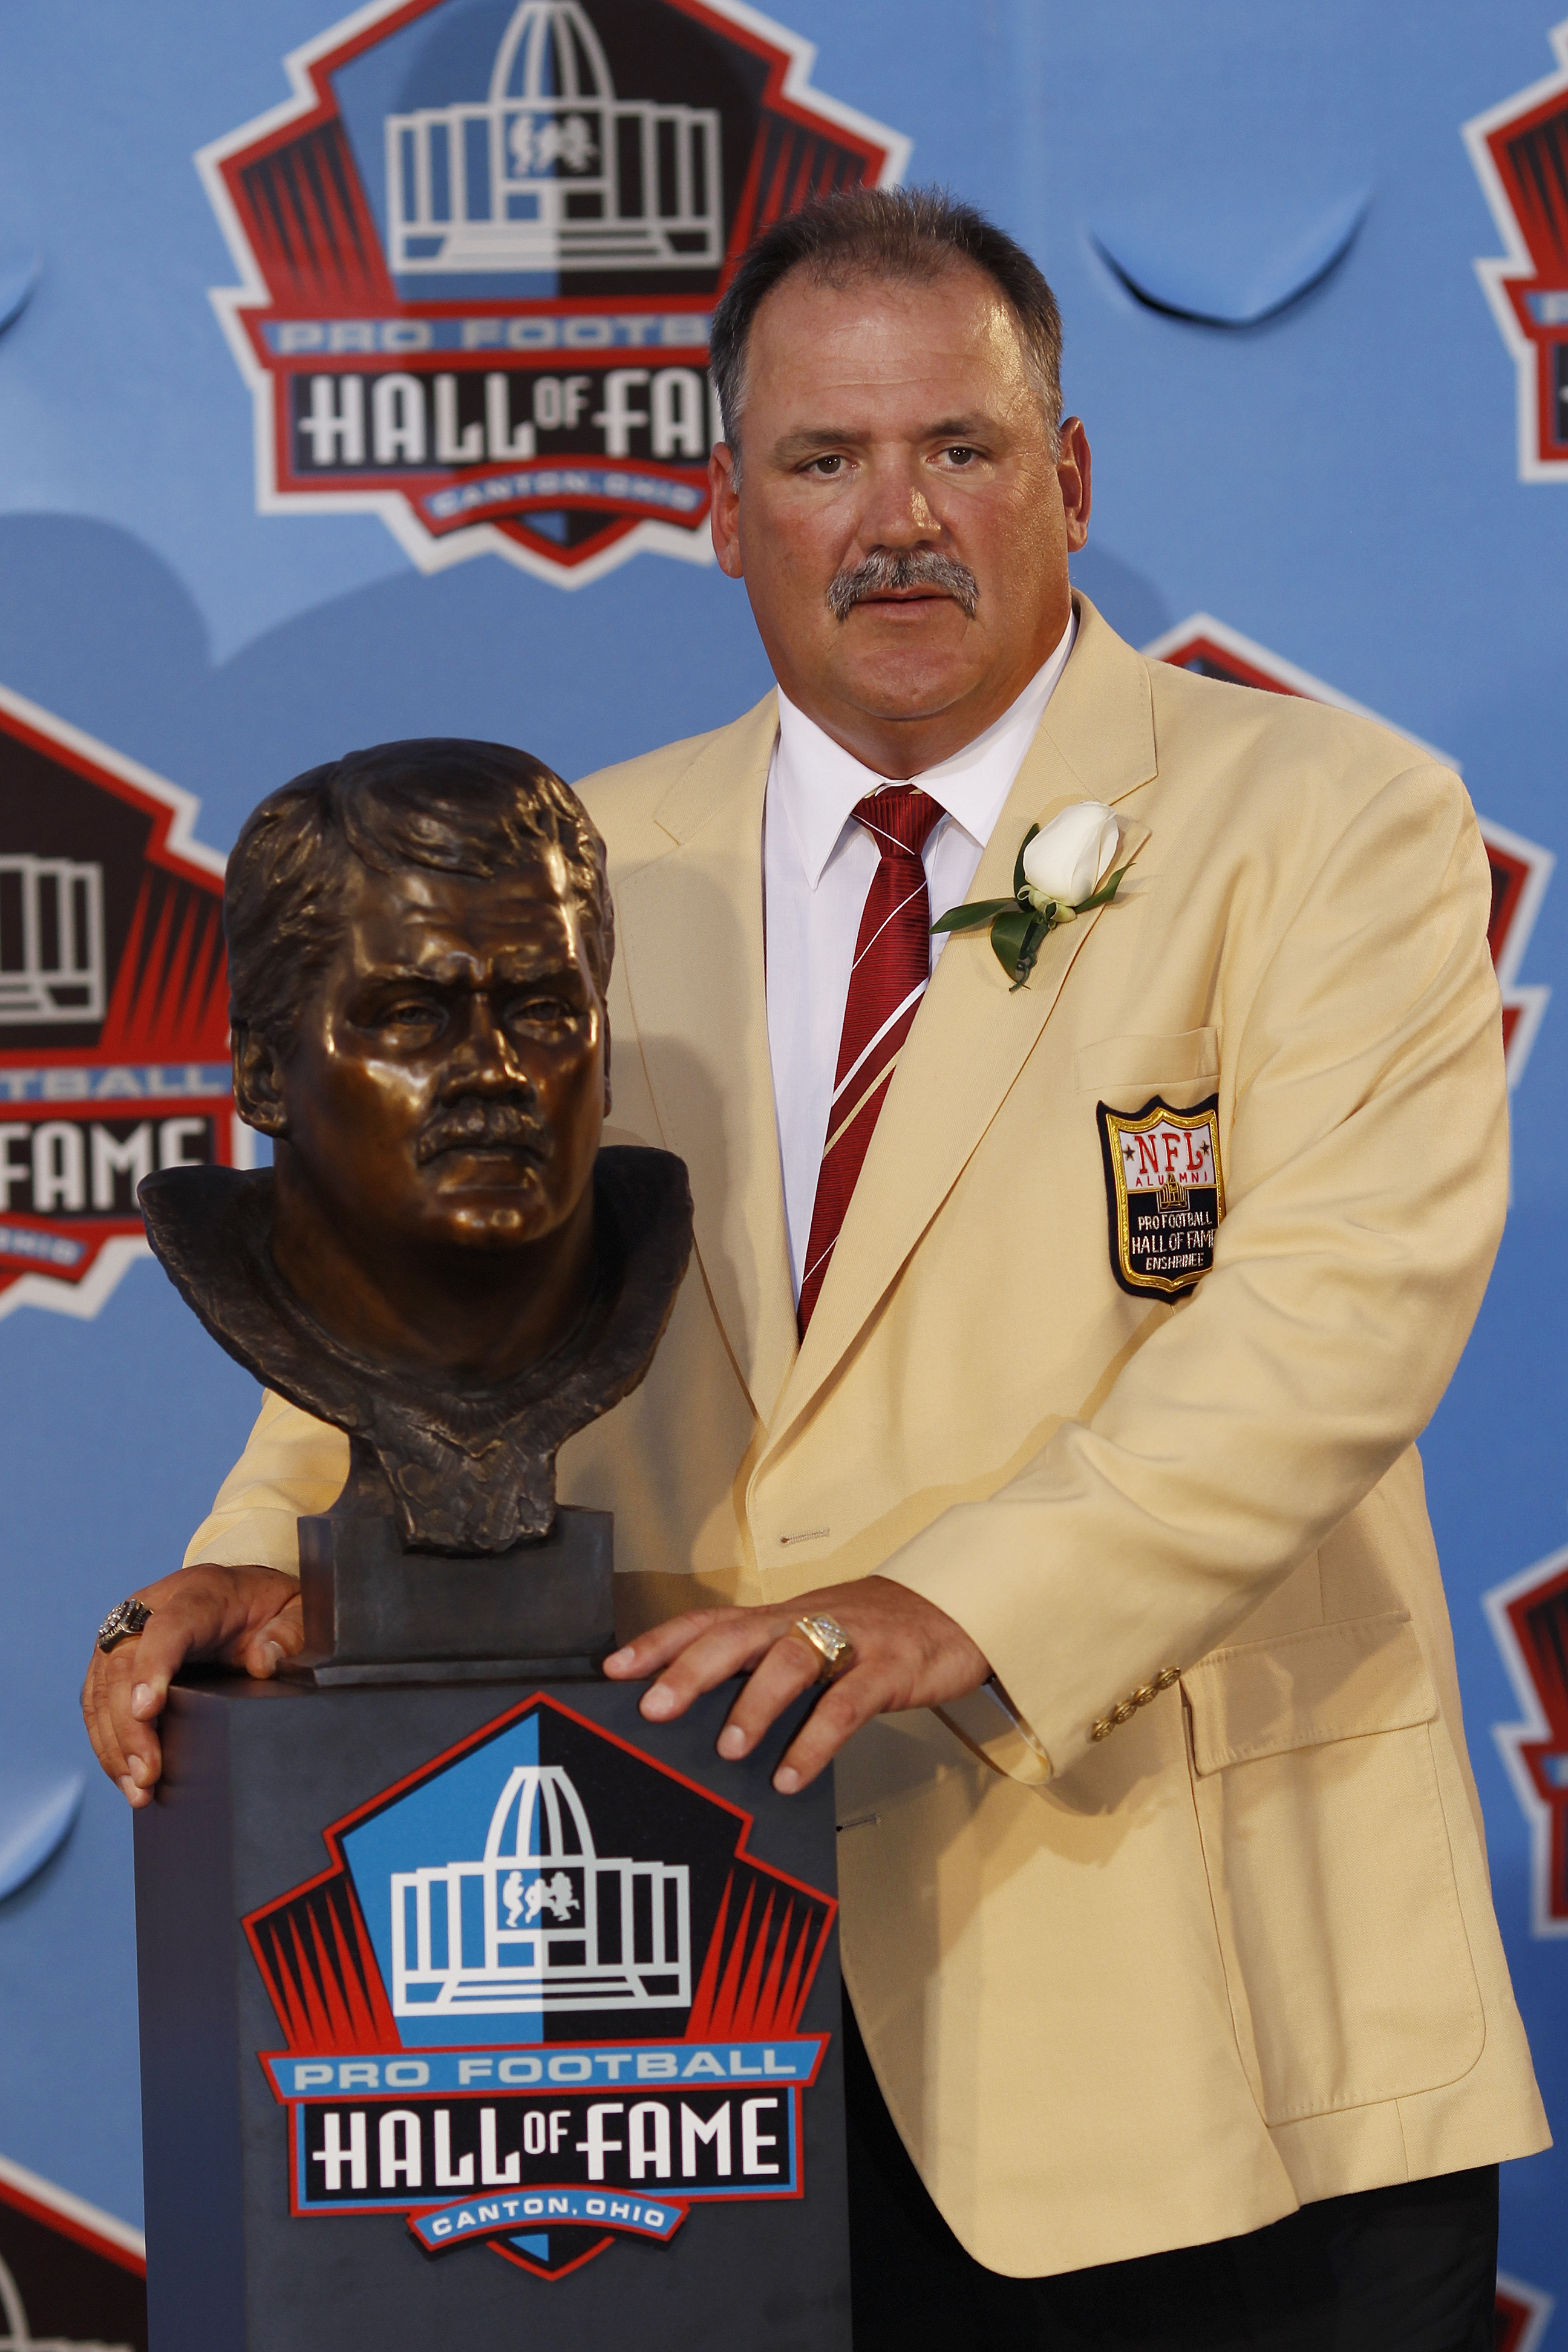 CANTON, OH - AUGUST 7: Russ Grimm poses with his bust during the 2010 Pro Football Hall of Fame Enshrinement Ceremony at the Pro Football Hall of Fame Field at Fawcett Stadium on August 7, 2010 in Canton, Ohio. (Photo by Joe Robbins/Getty Images)